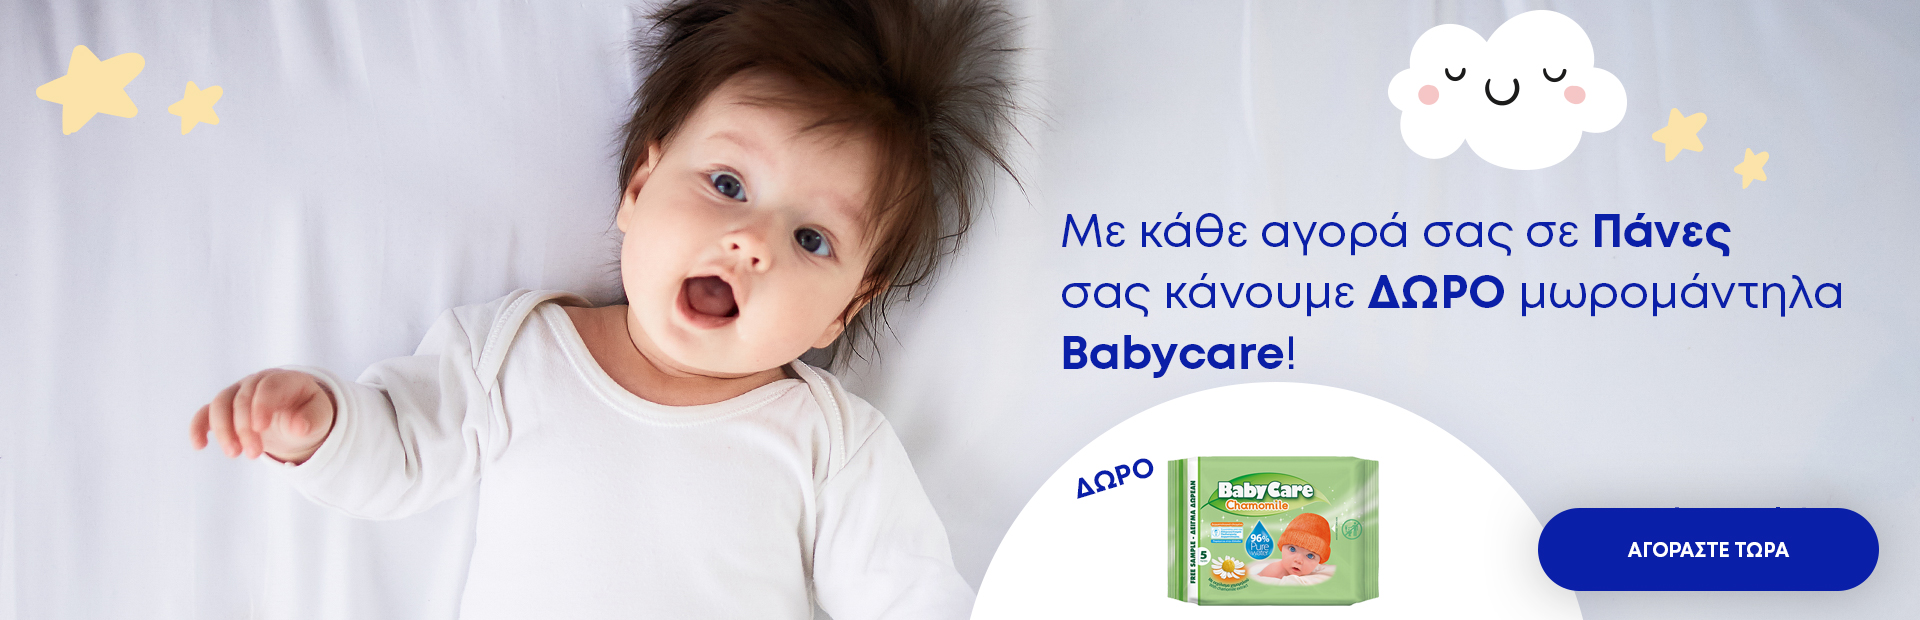 gift babycare